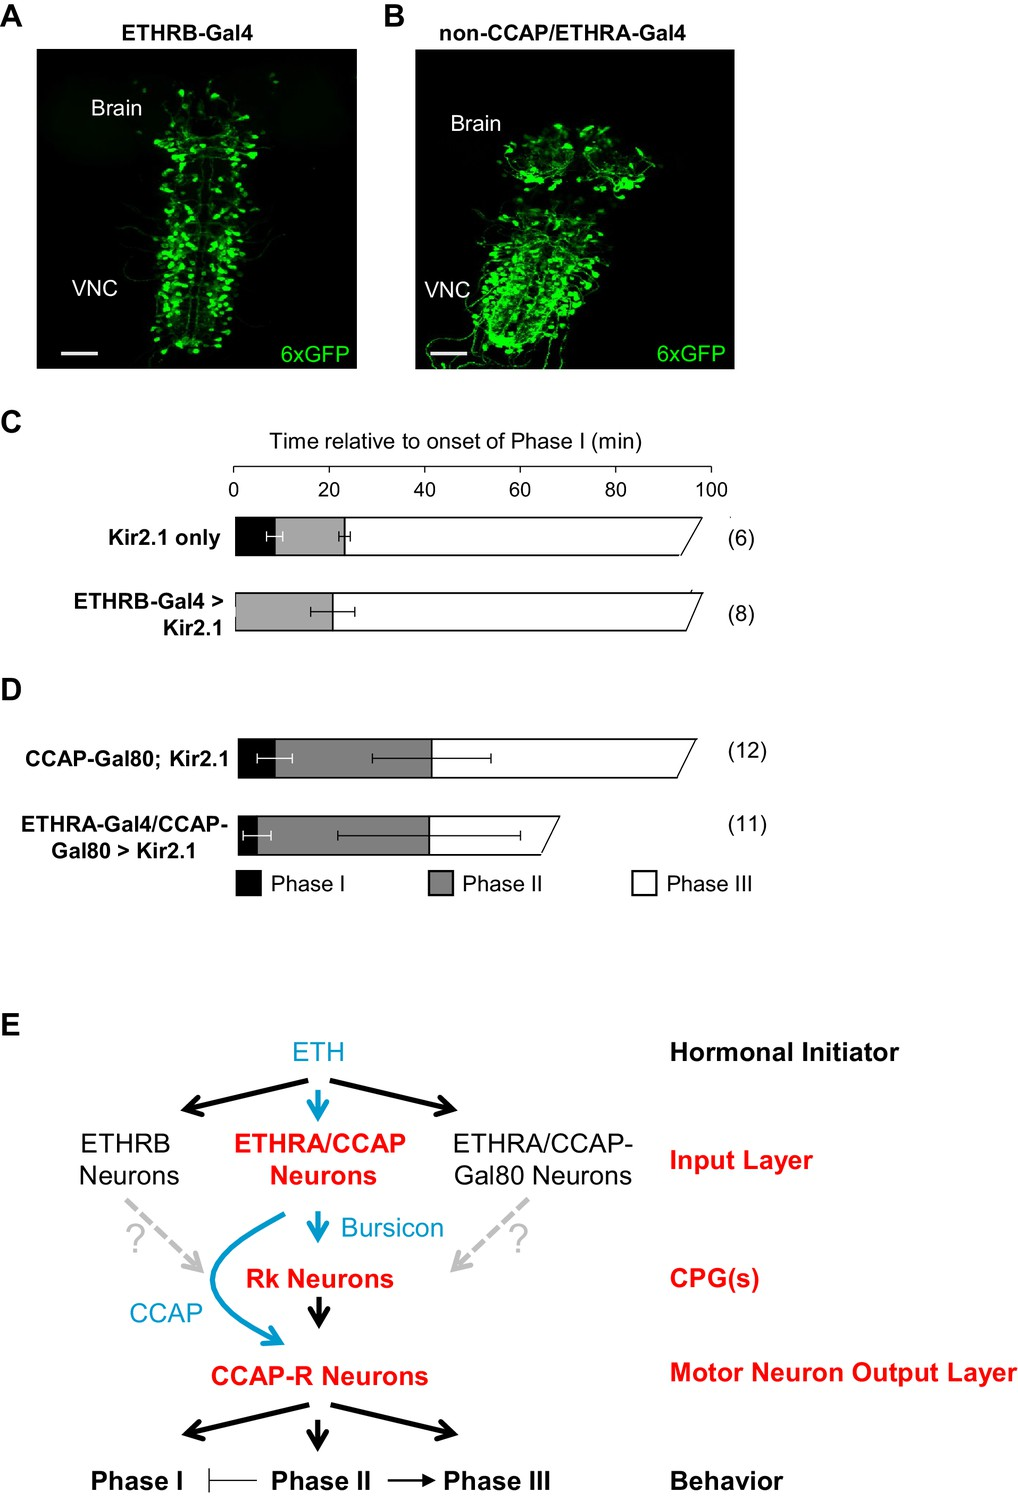 Neuromodulatory Connectivity Defines The Structure Of A Behavioral Heater Wiring Diagram Holmes Get Free Image About Ethrb Expressing And Non Ccap Ethra Neurons Regulate Phase I